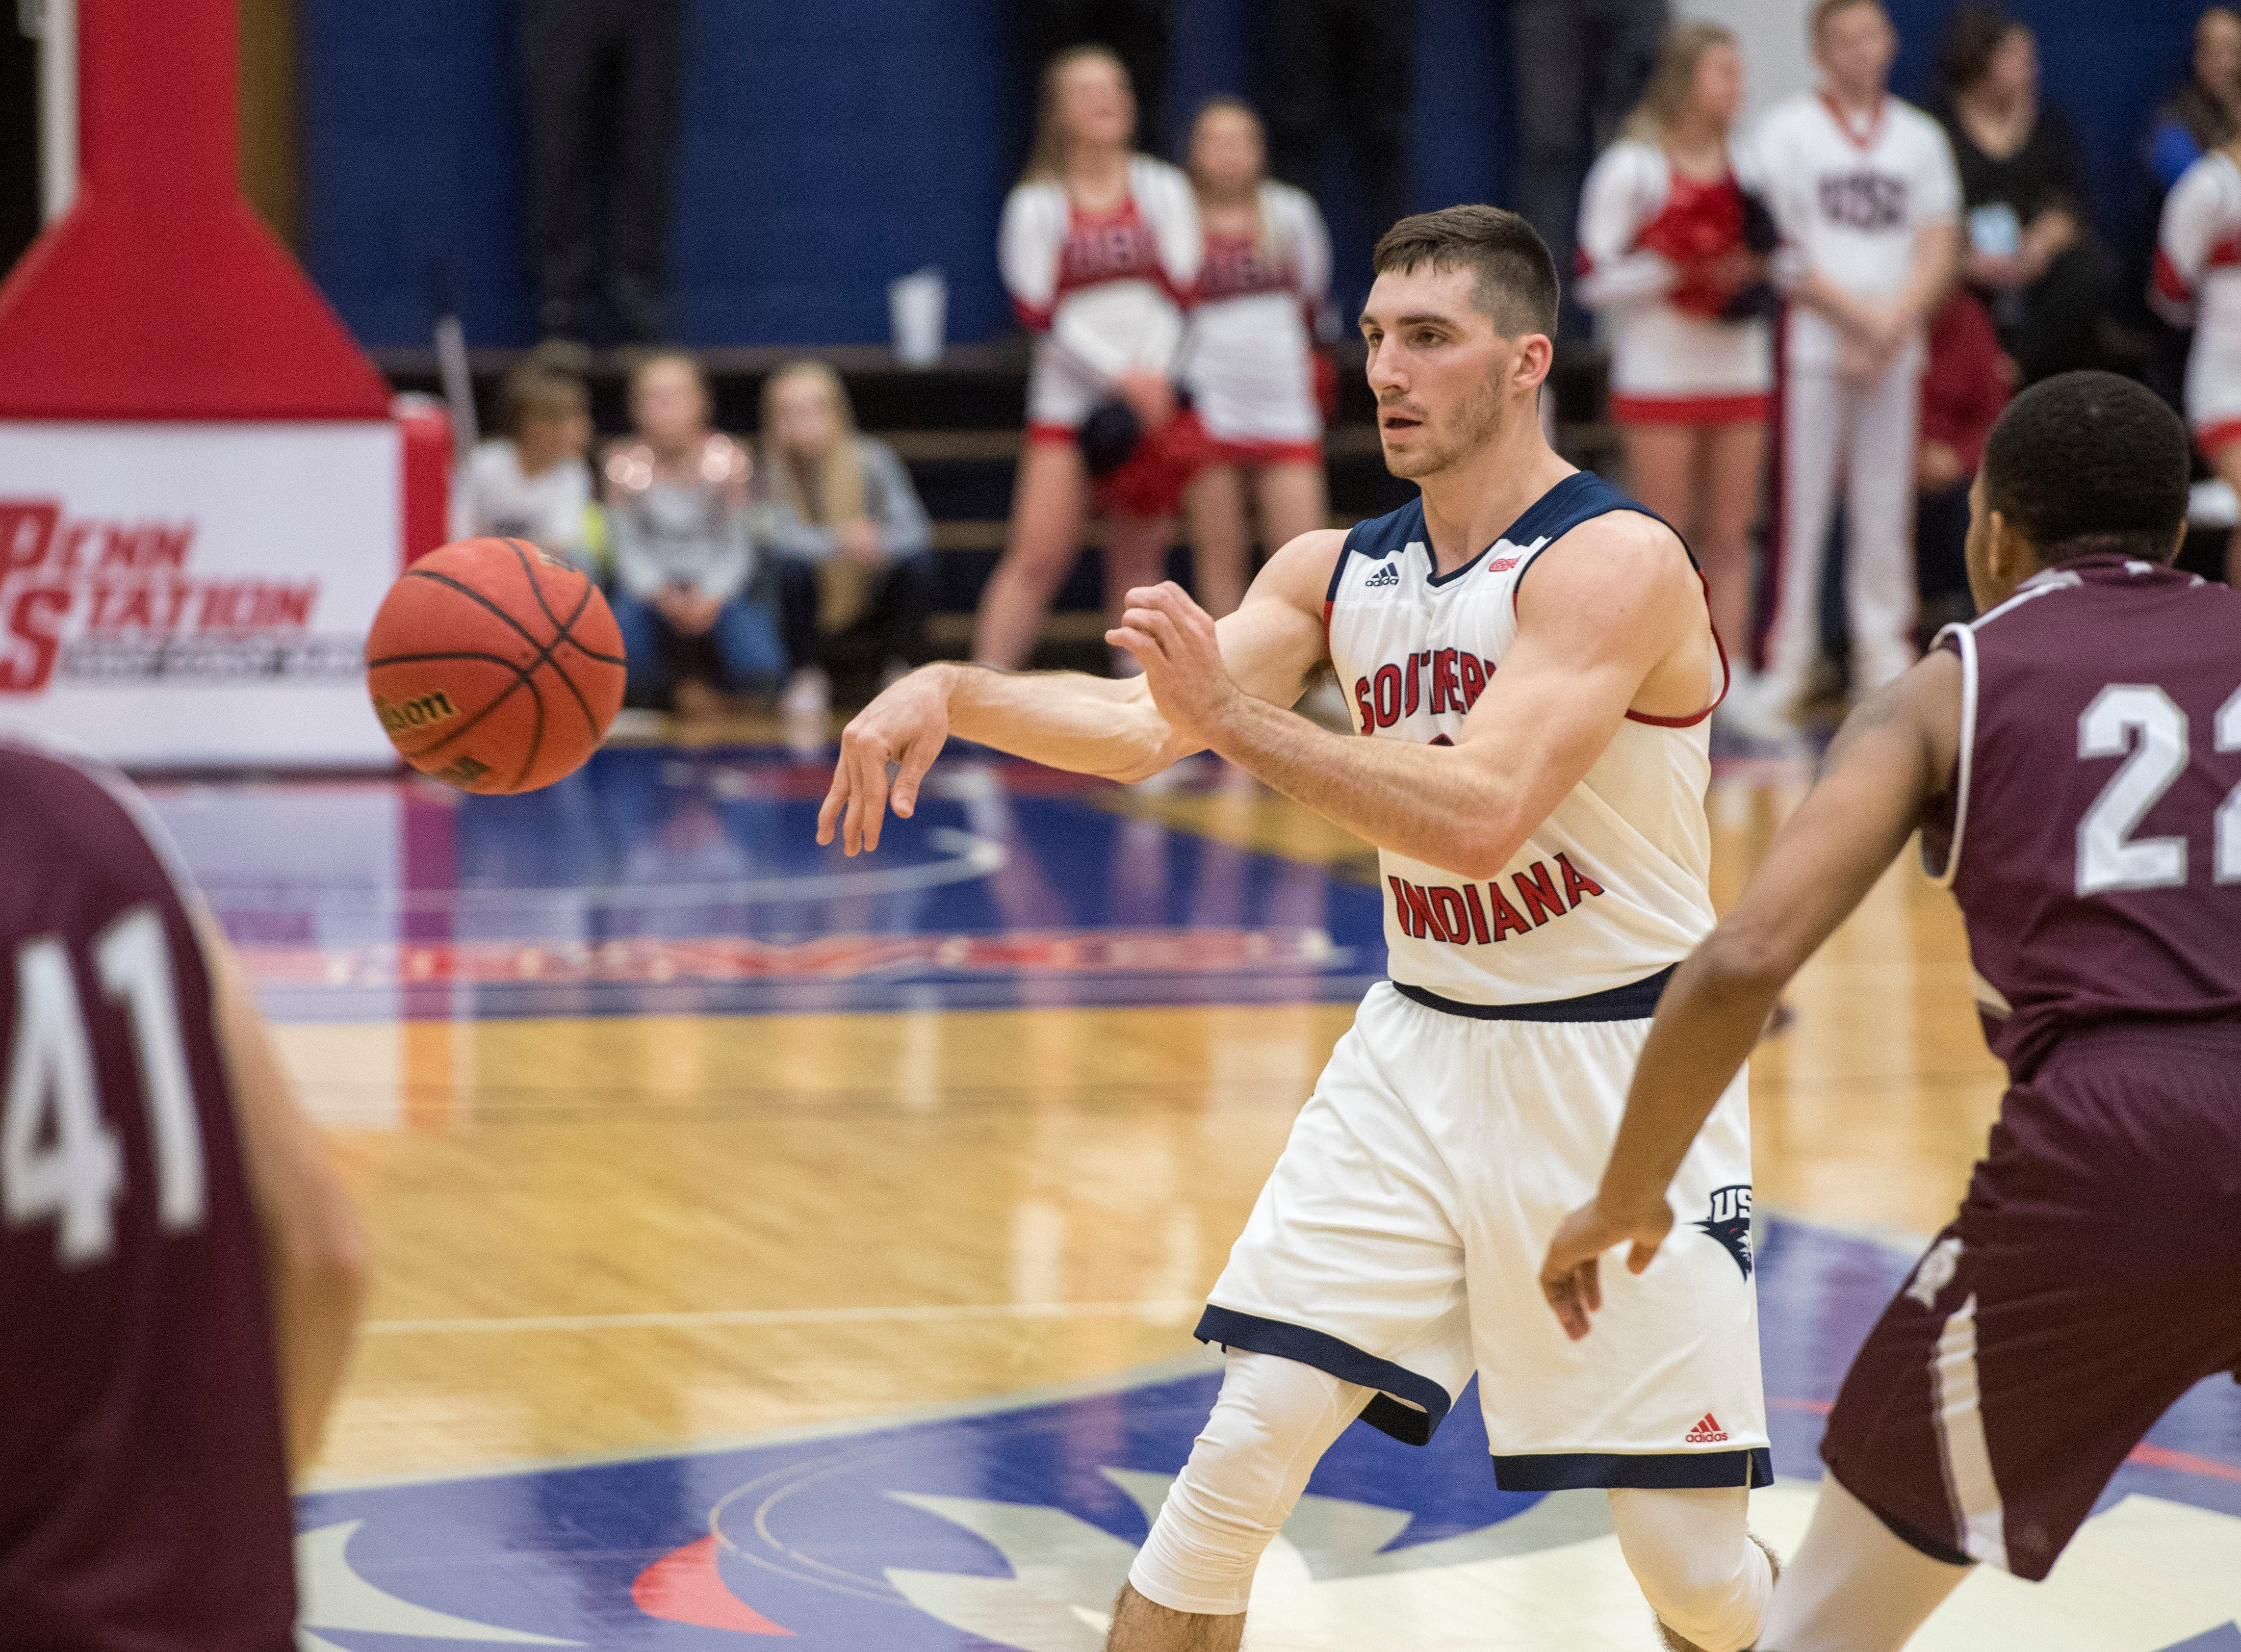 USI's Jacob Norman (2) passes the ball during the USI vs Bellarmine game at the PAC Saturday, Dec. 1, 2018.